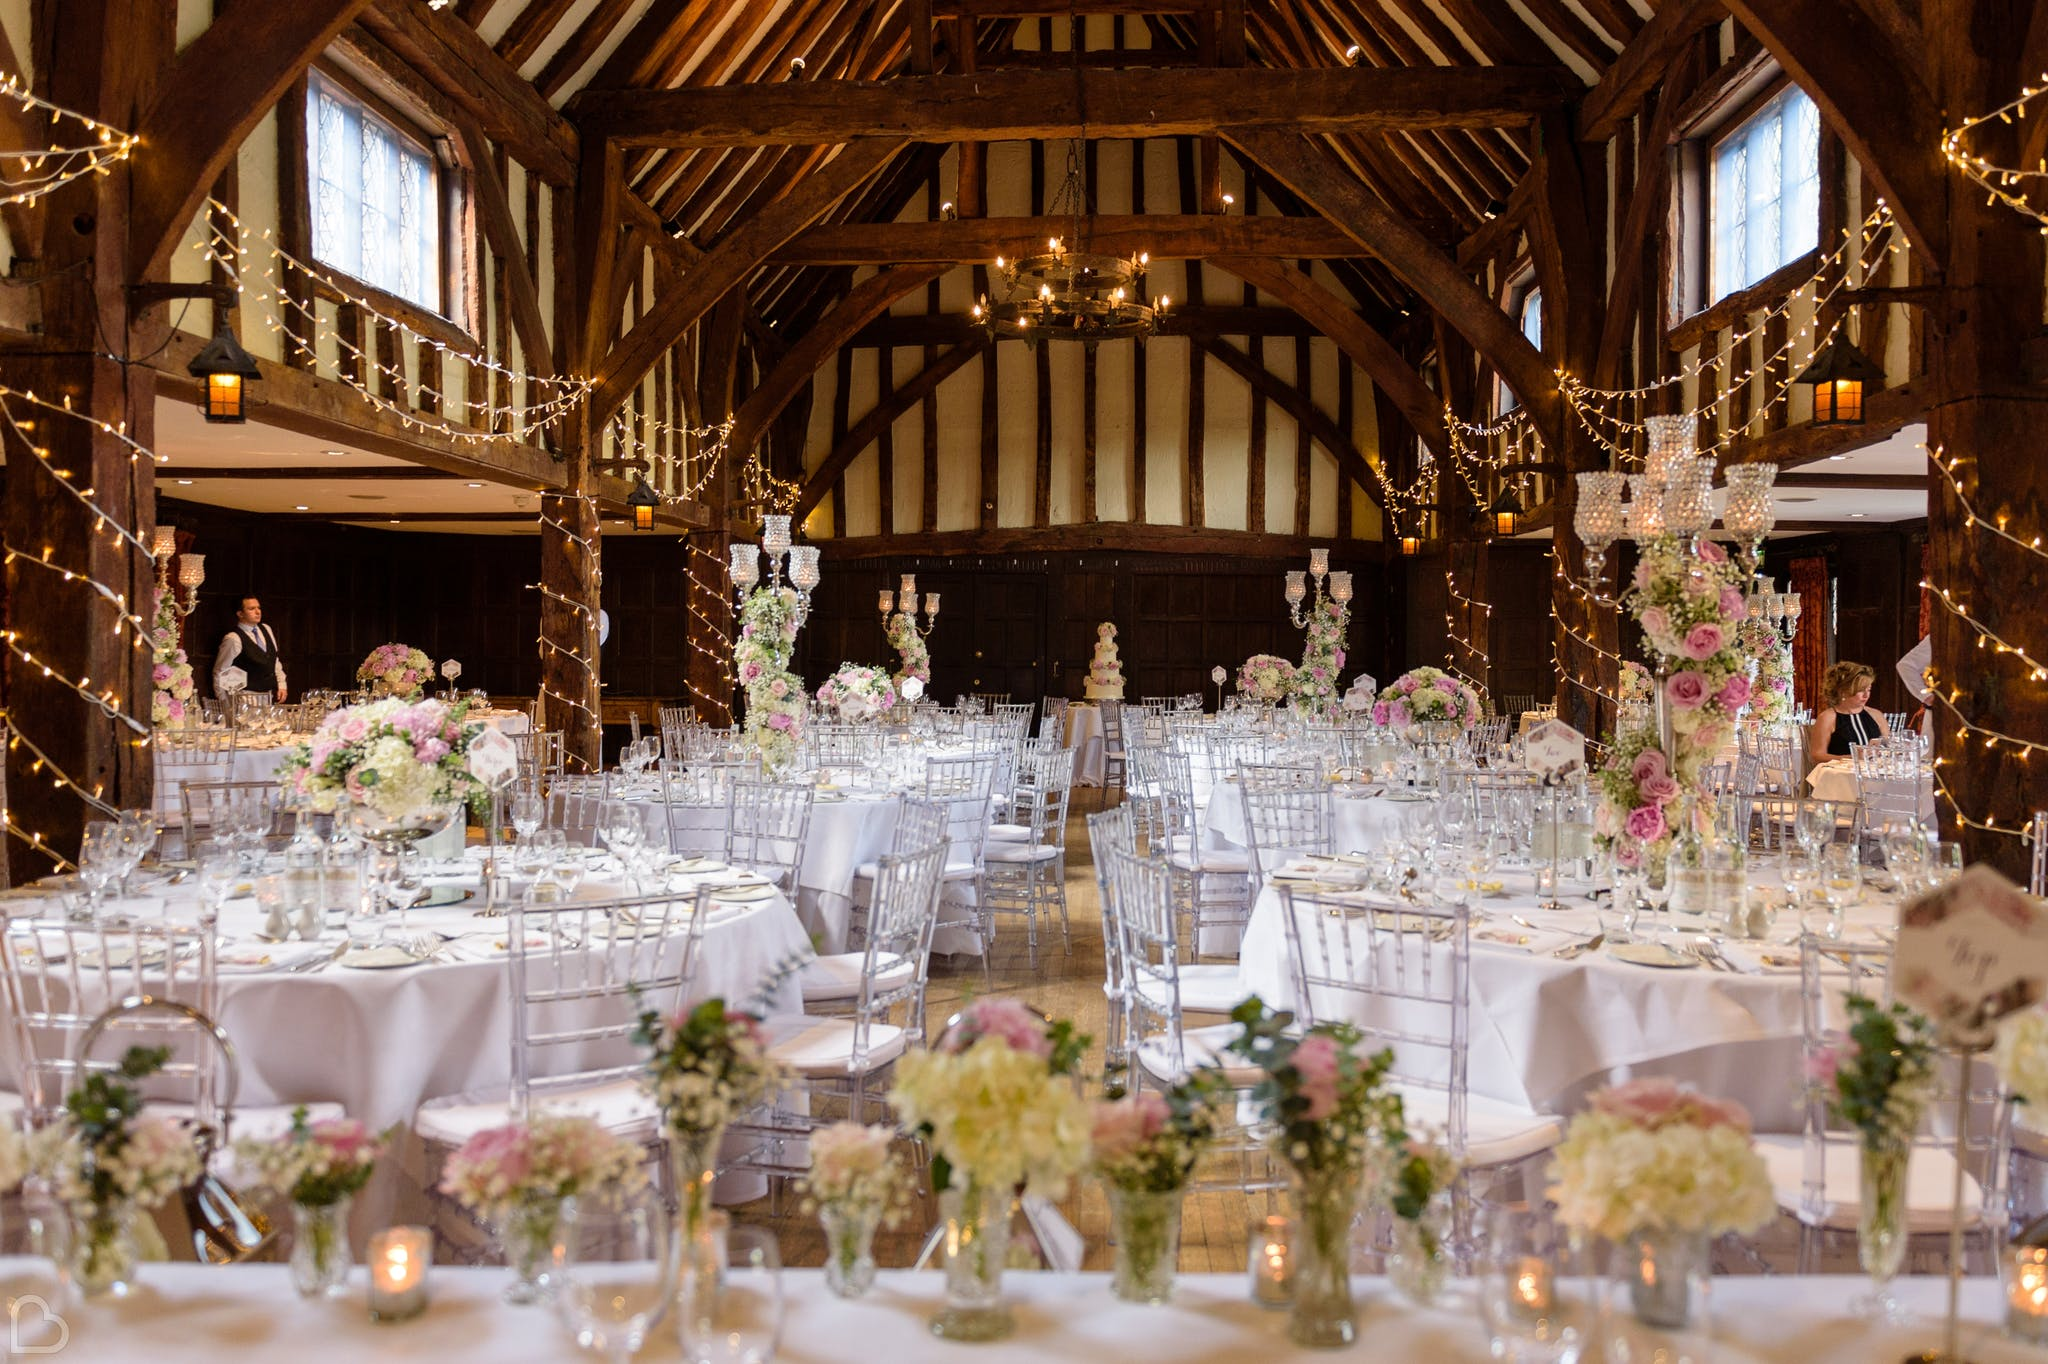 great fosters, a wedding reception venue in London, decorated with fairy lights and pastel flowers for a wedding lunch